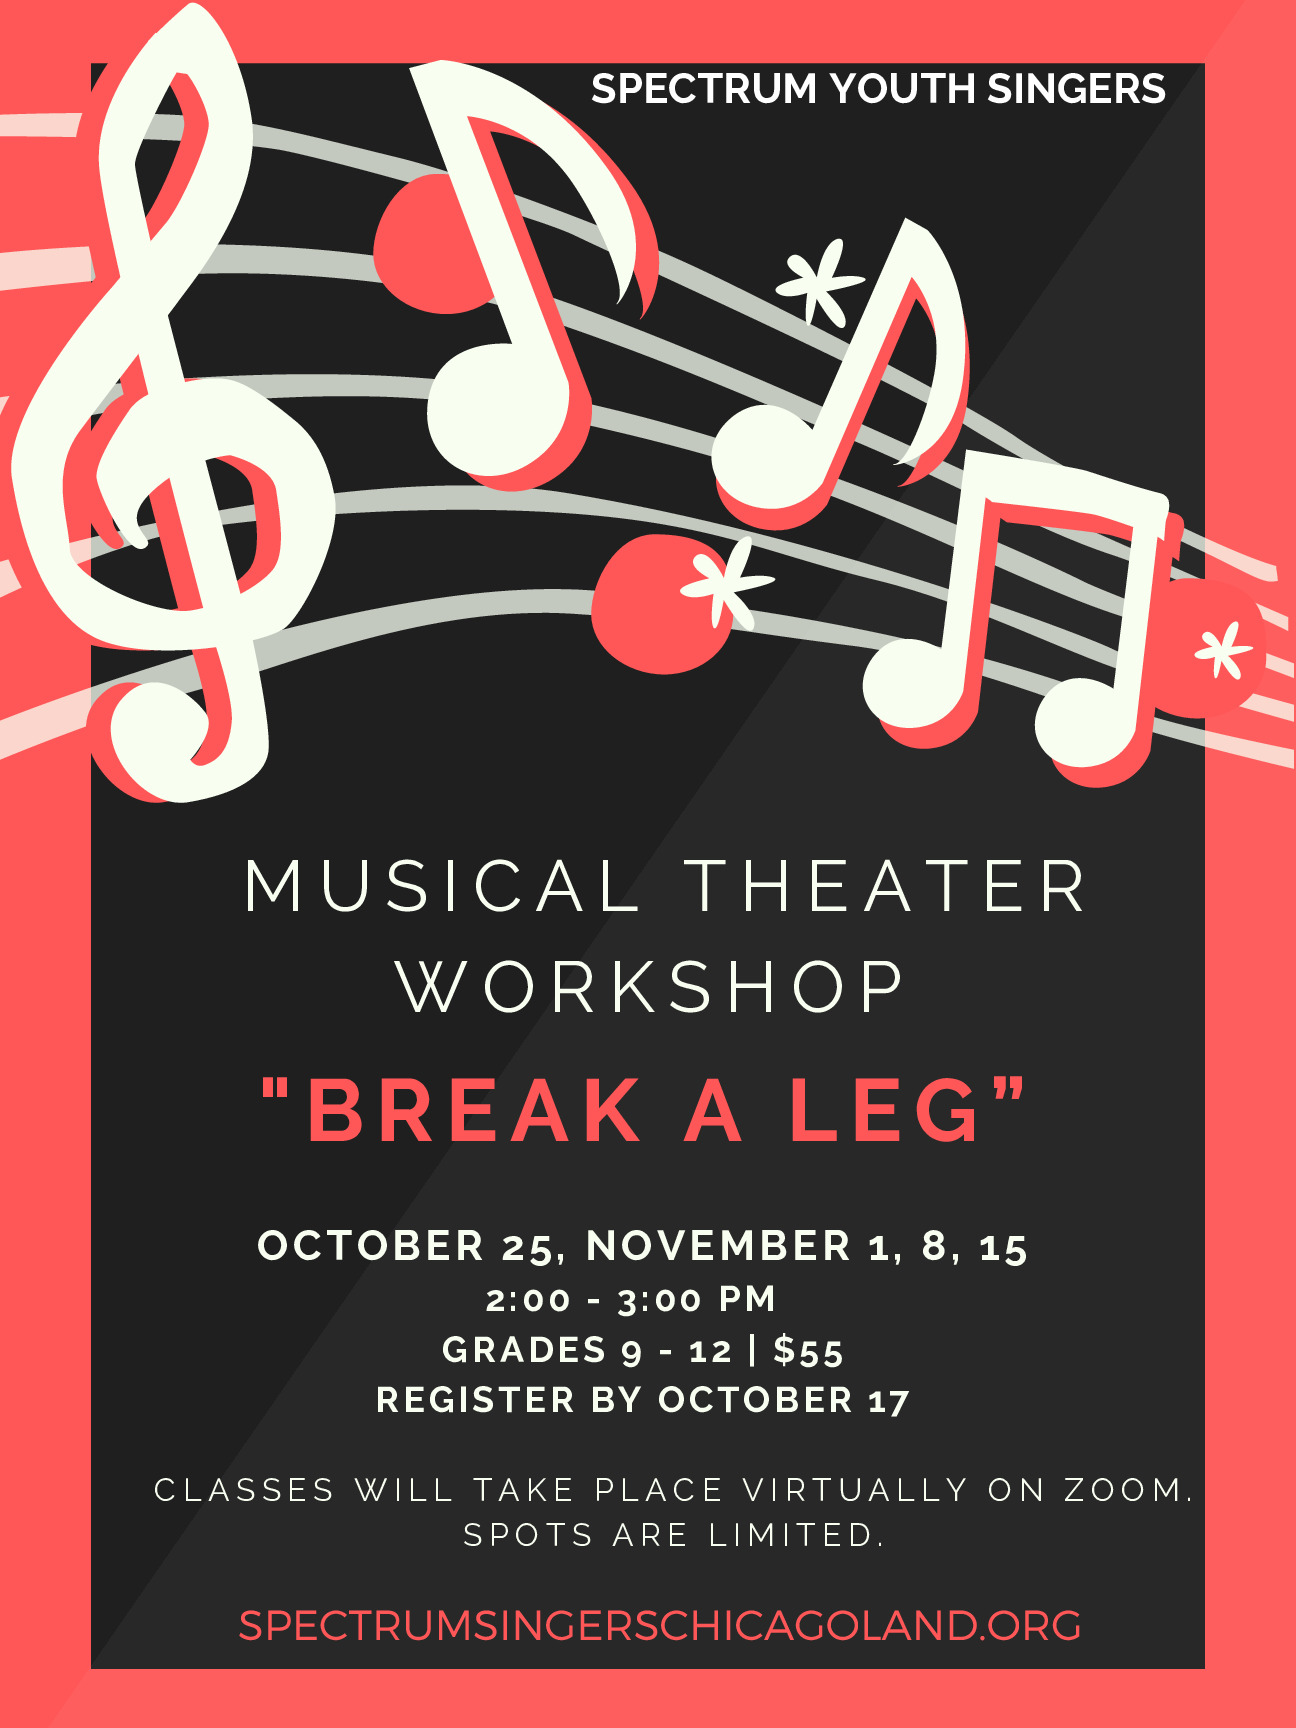 Musical Theater Workshop, Spectrum Youth Singers, Plainfield